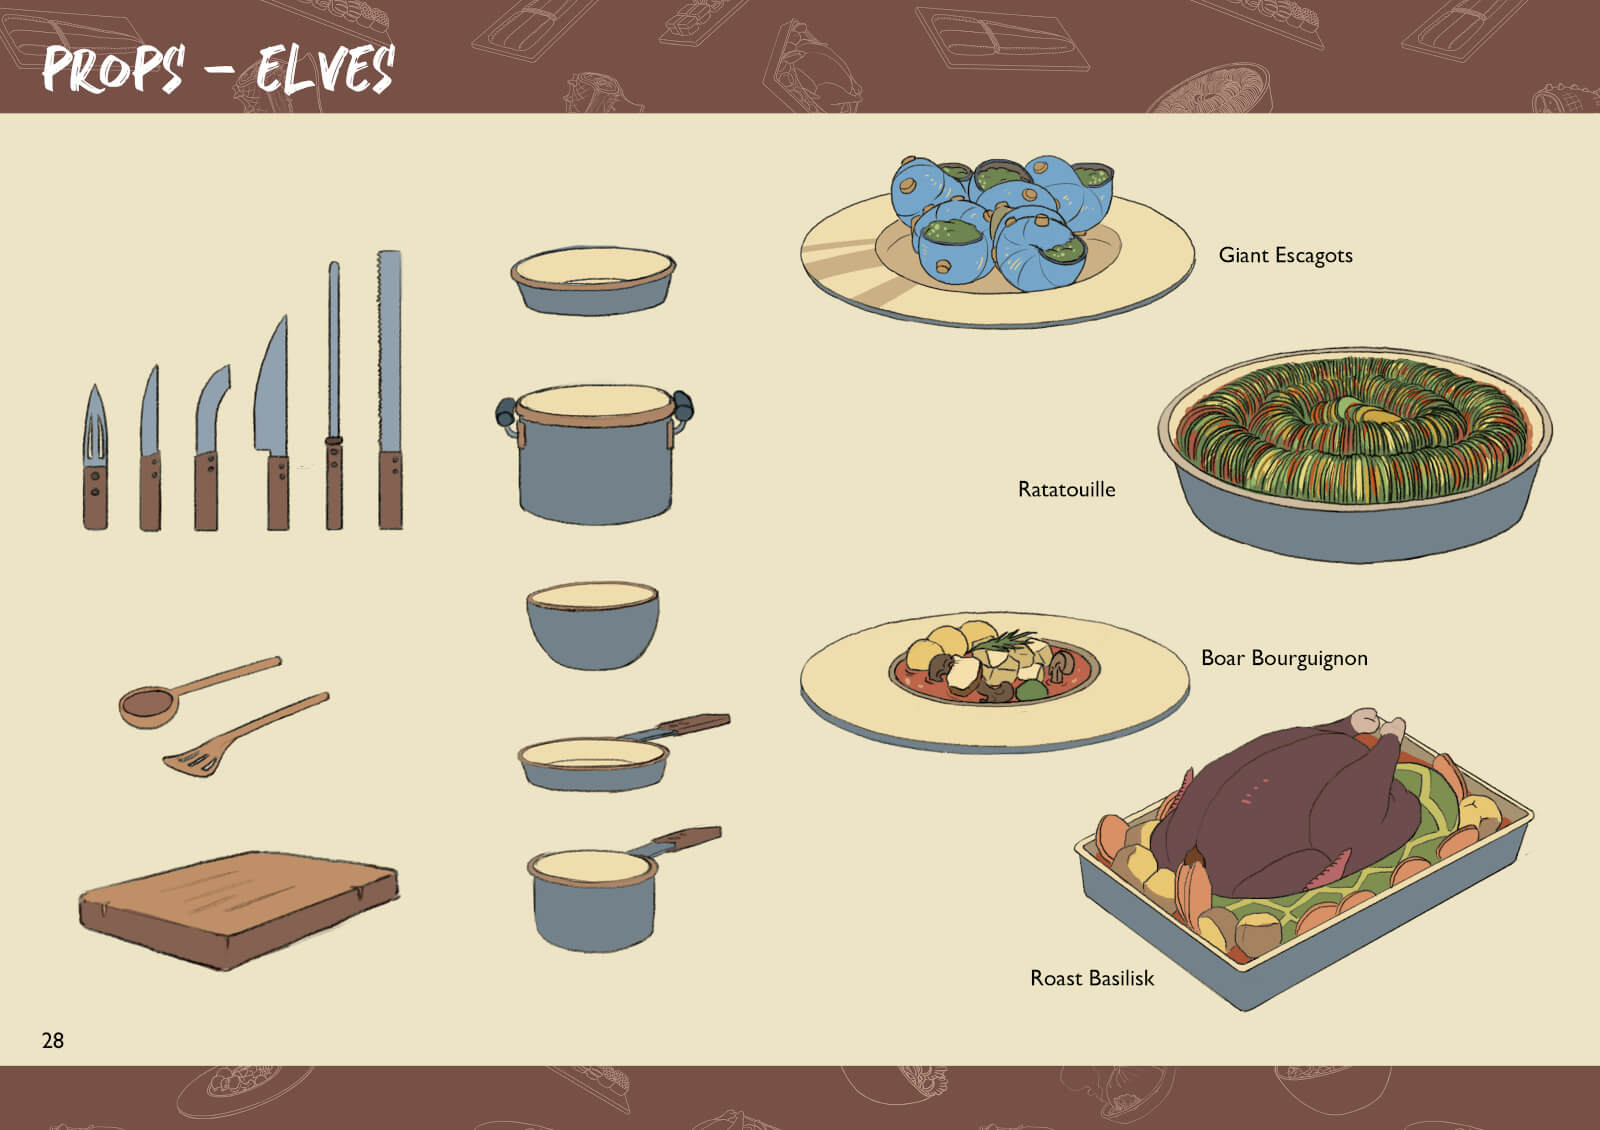 Food and cooking prop drawings